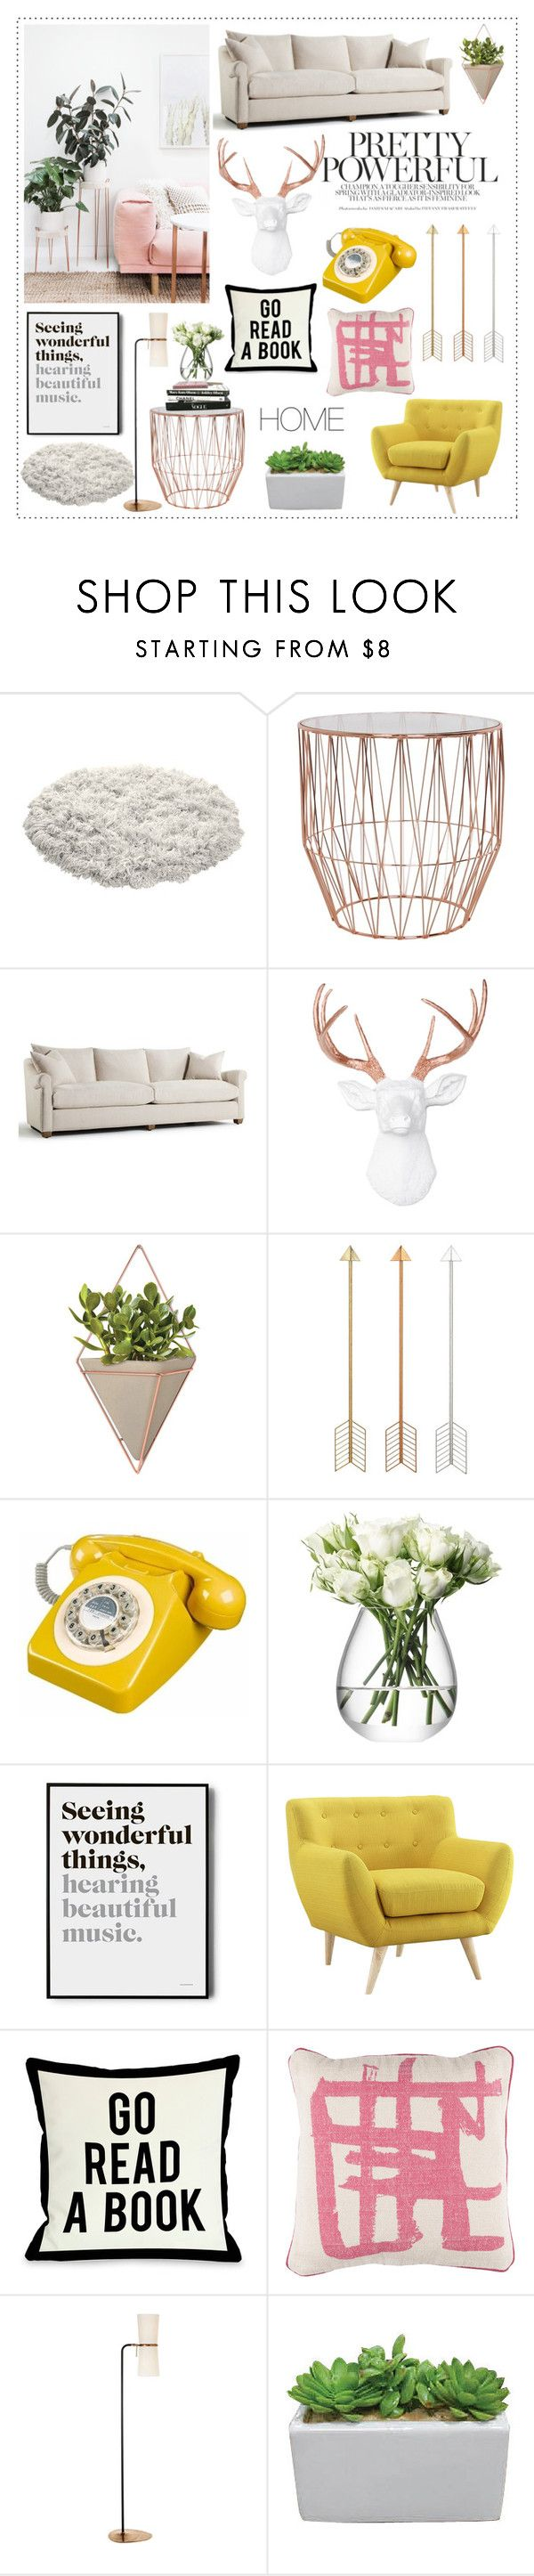 """""""Living Room"""" by bittersweet89 ❤ liked on Polyvore featuring interior, interiors, interior design, home, home decor, interior decorating, Umbra, LSA International, One Bella Casa and Surya"""